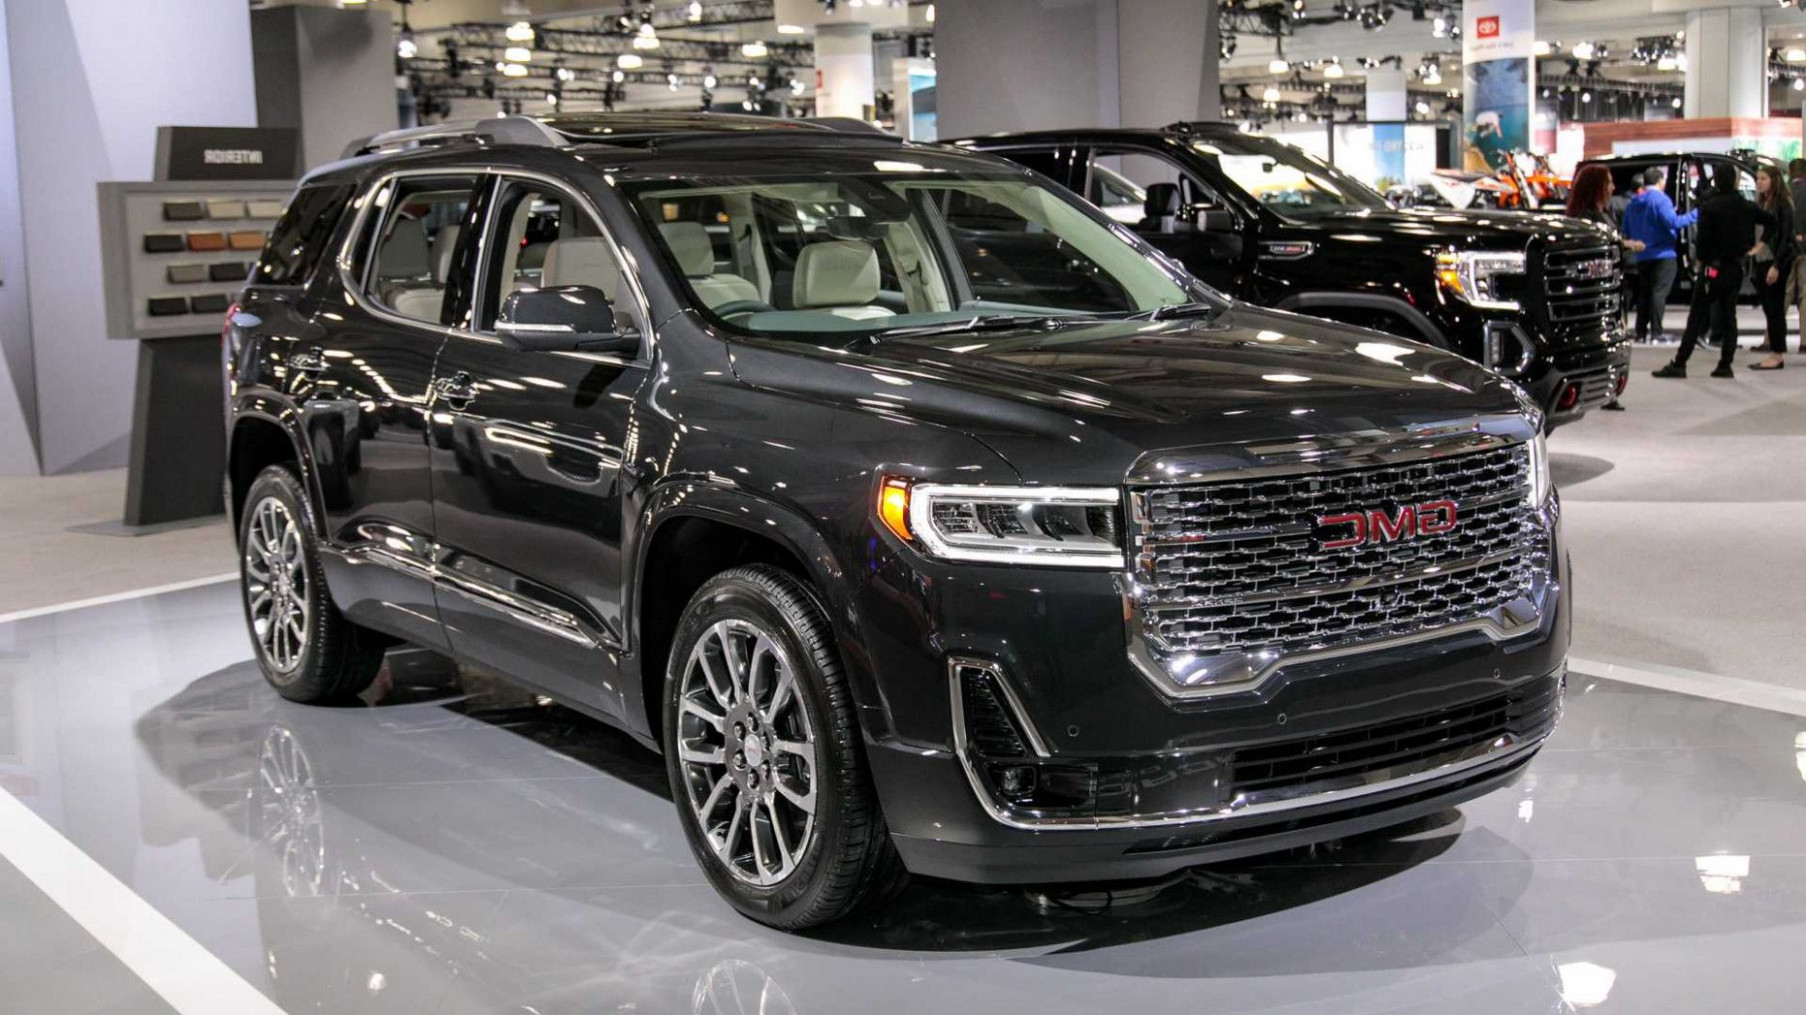 All You Need To Know About 6 Gmc Envoy (With images) | Gmc ..